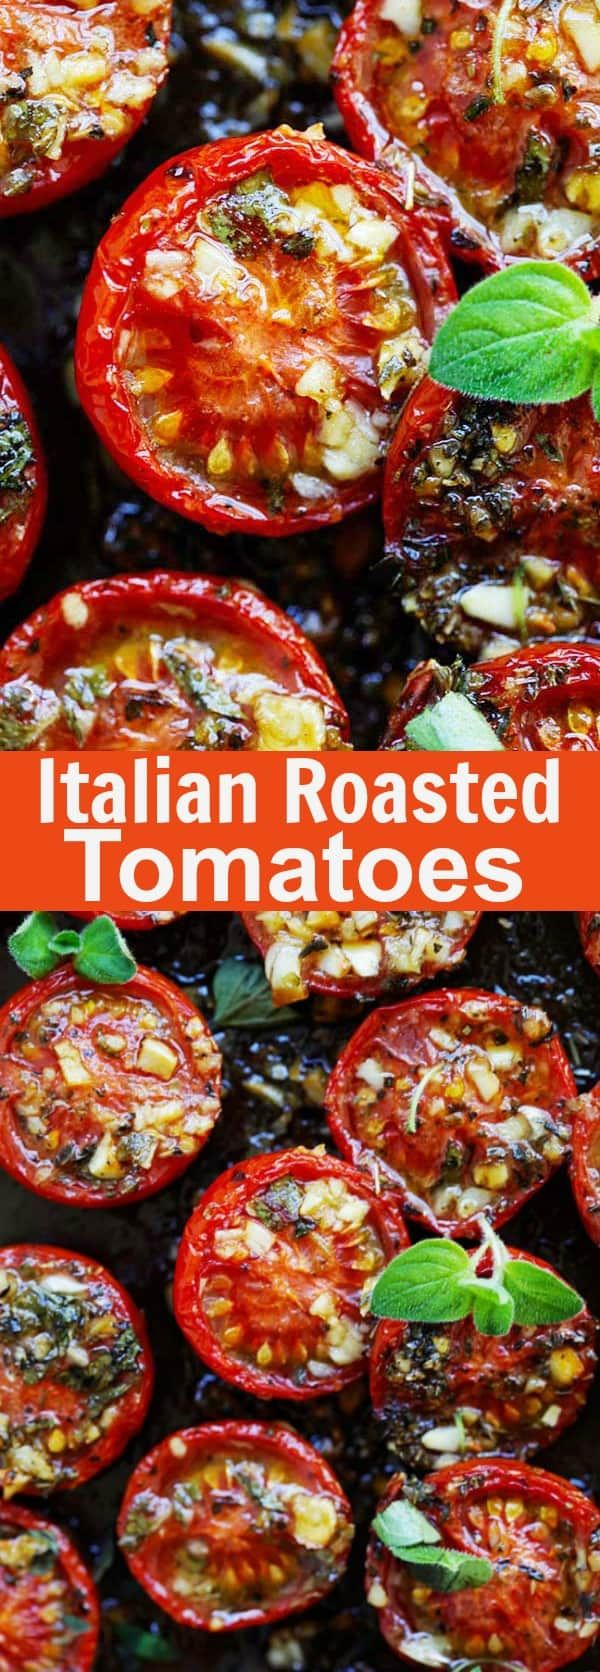 Italian roasted tomatoes - the best roasted tomatoes recipe with garlic, olive oil, Italian seasoning and oregano. These perfect oven roasted tomatoes take only 10 mins active time | rasamalaysia.com